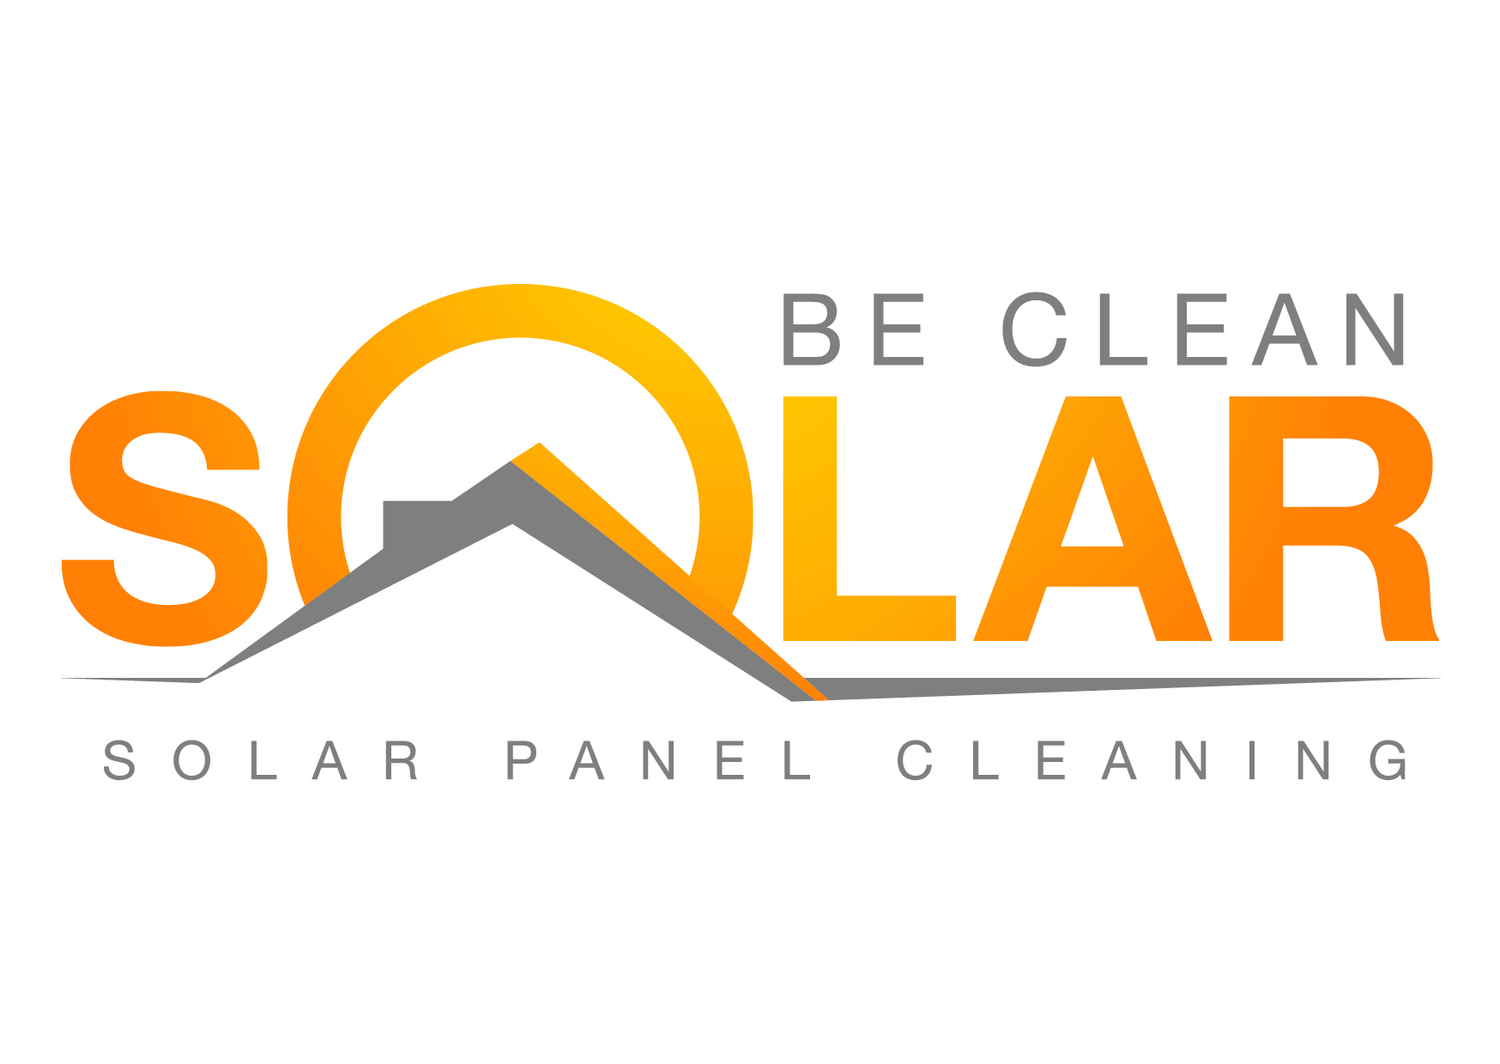 BeCleanSolar